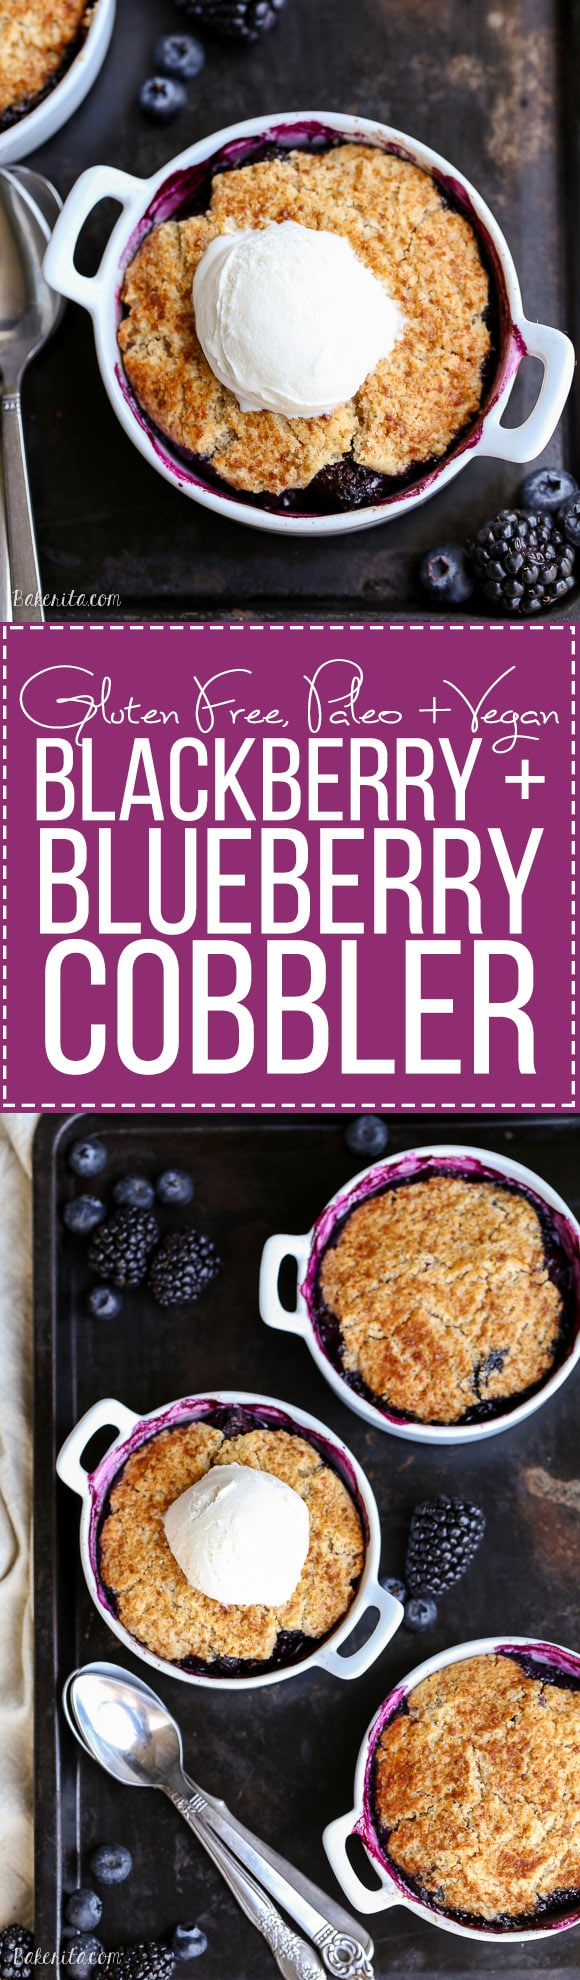 This Blackberry + Blueberry Cobbler is healthy enough for breakfast, but sweet + delicious enough to be dessert! These gluten-free, Paleo, and vegan cobblers have a crisp and gooey topping.